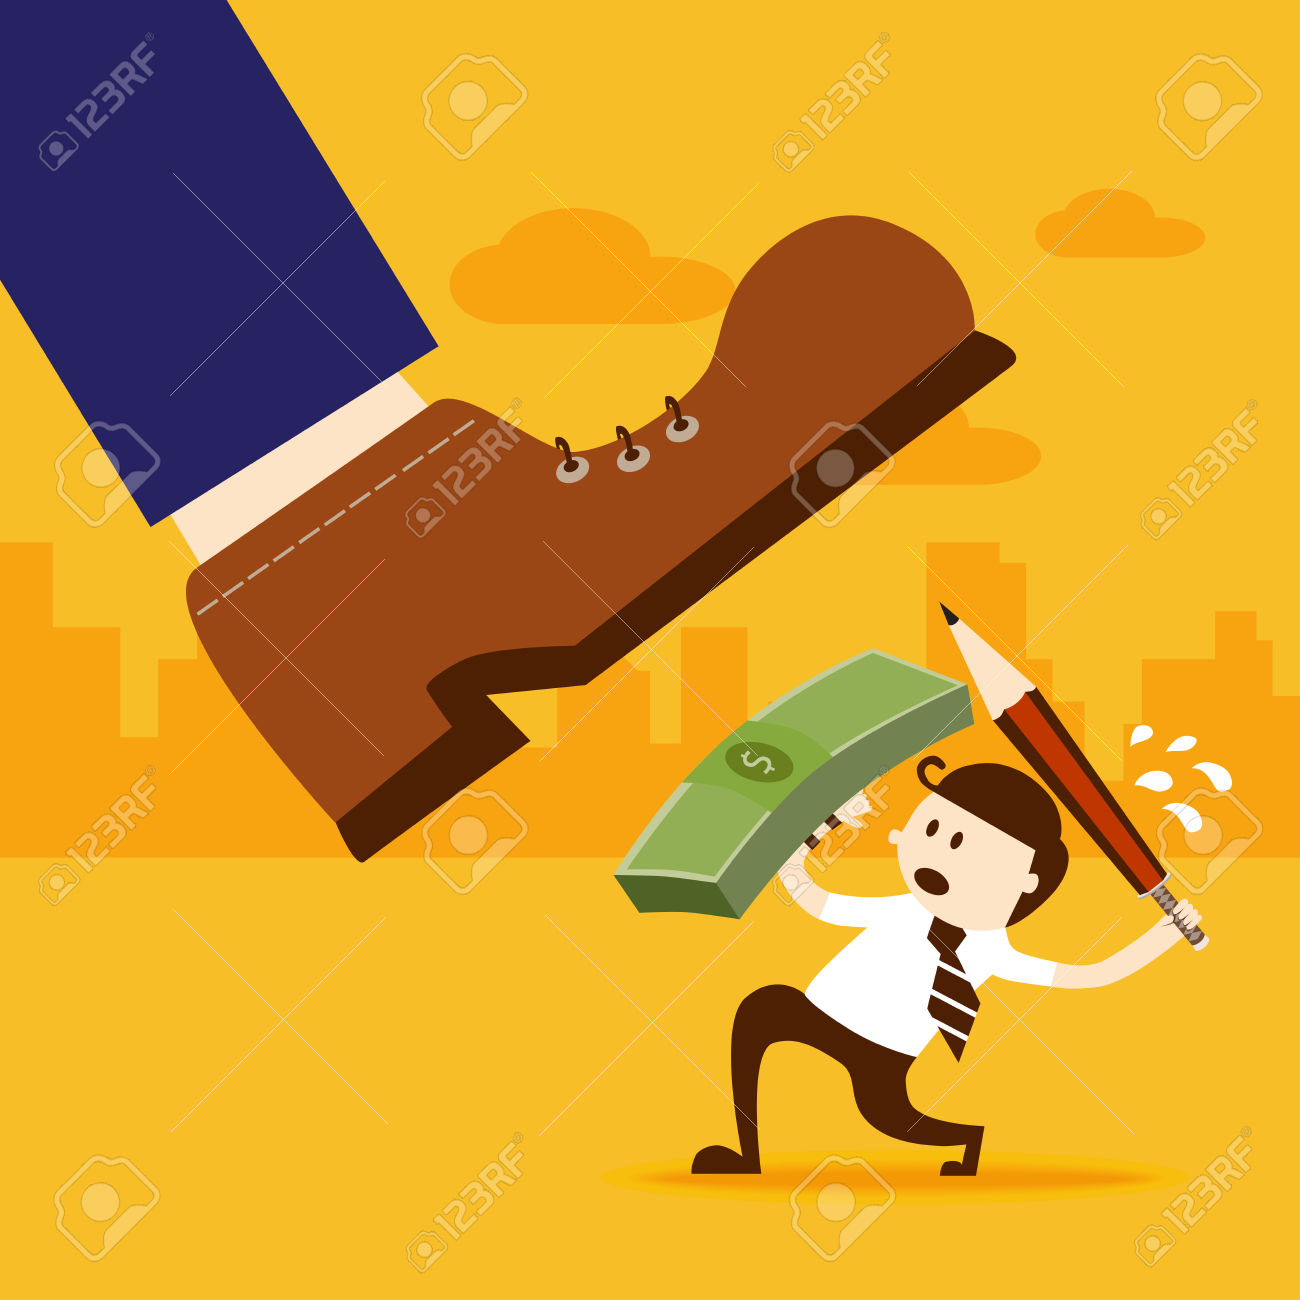 Man with big feet clipart clip library stock 1,492 Big Feet Stock Vector Illustration And Royalty Free Big Feet ... clip library stock